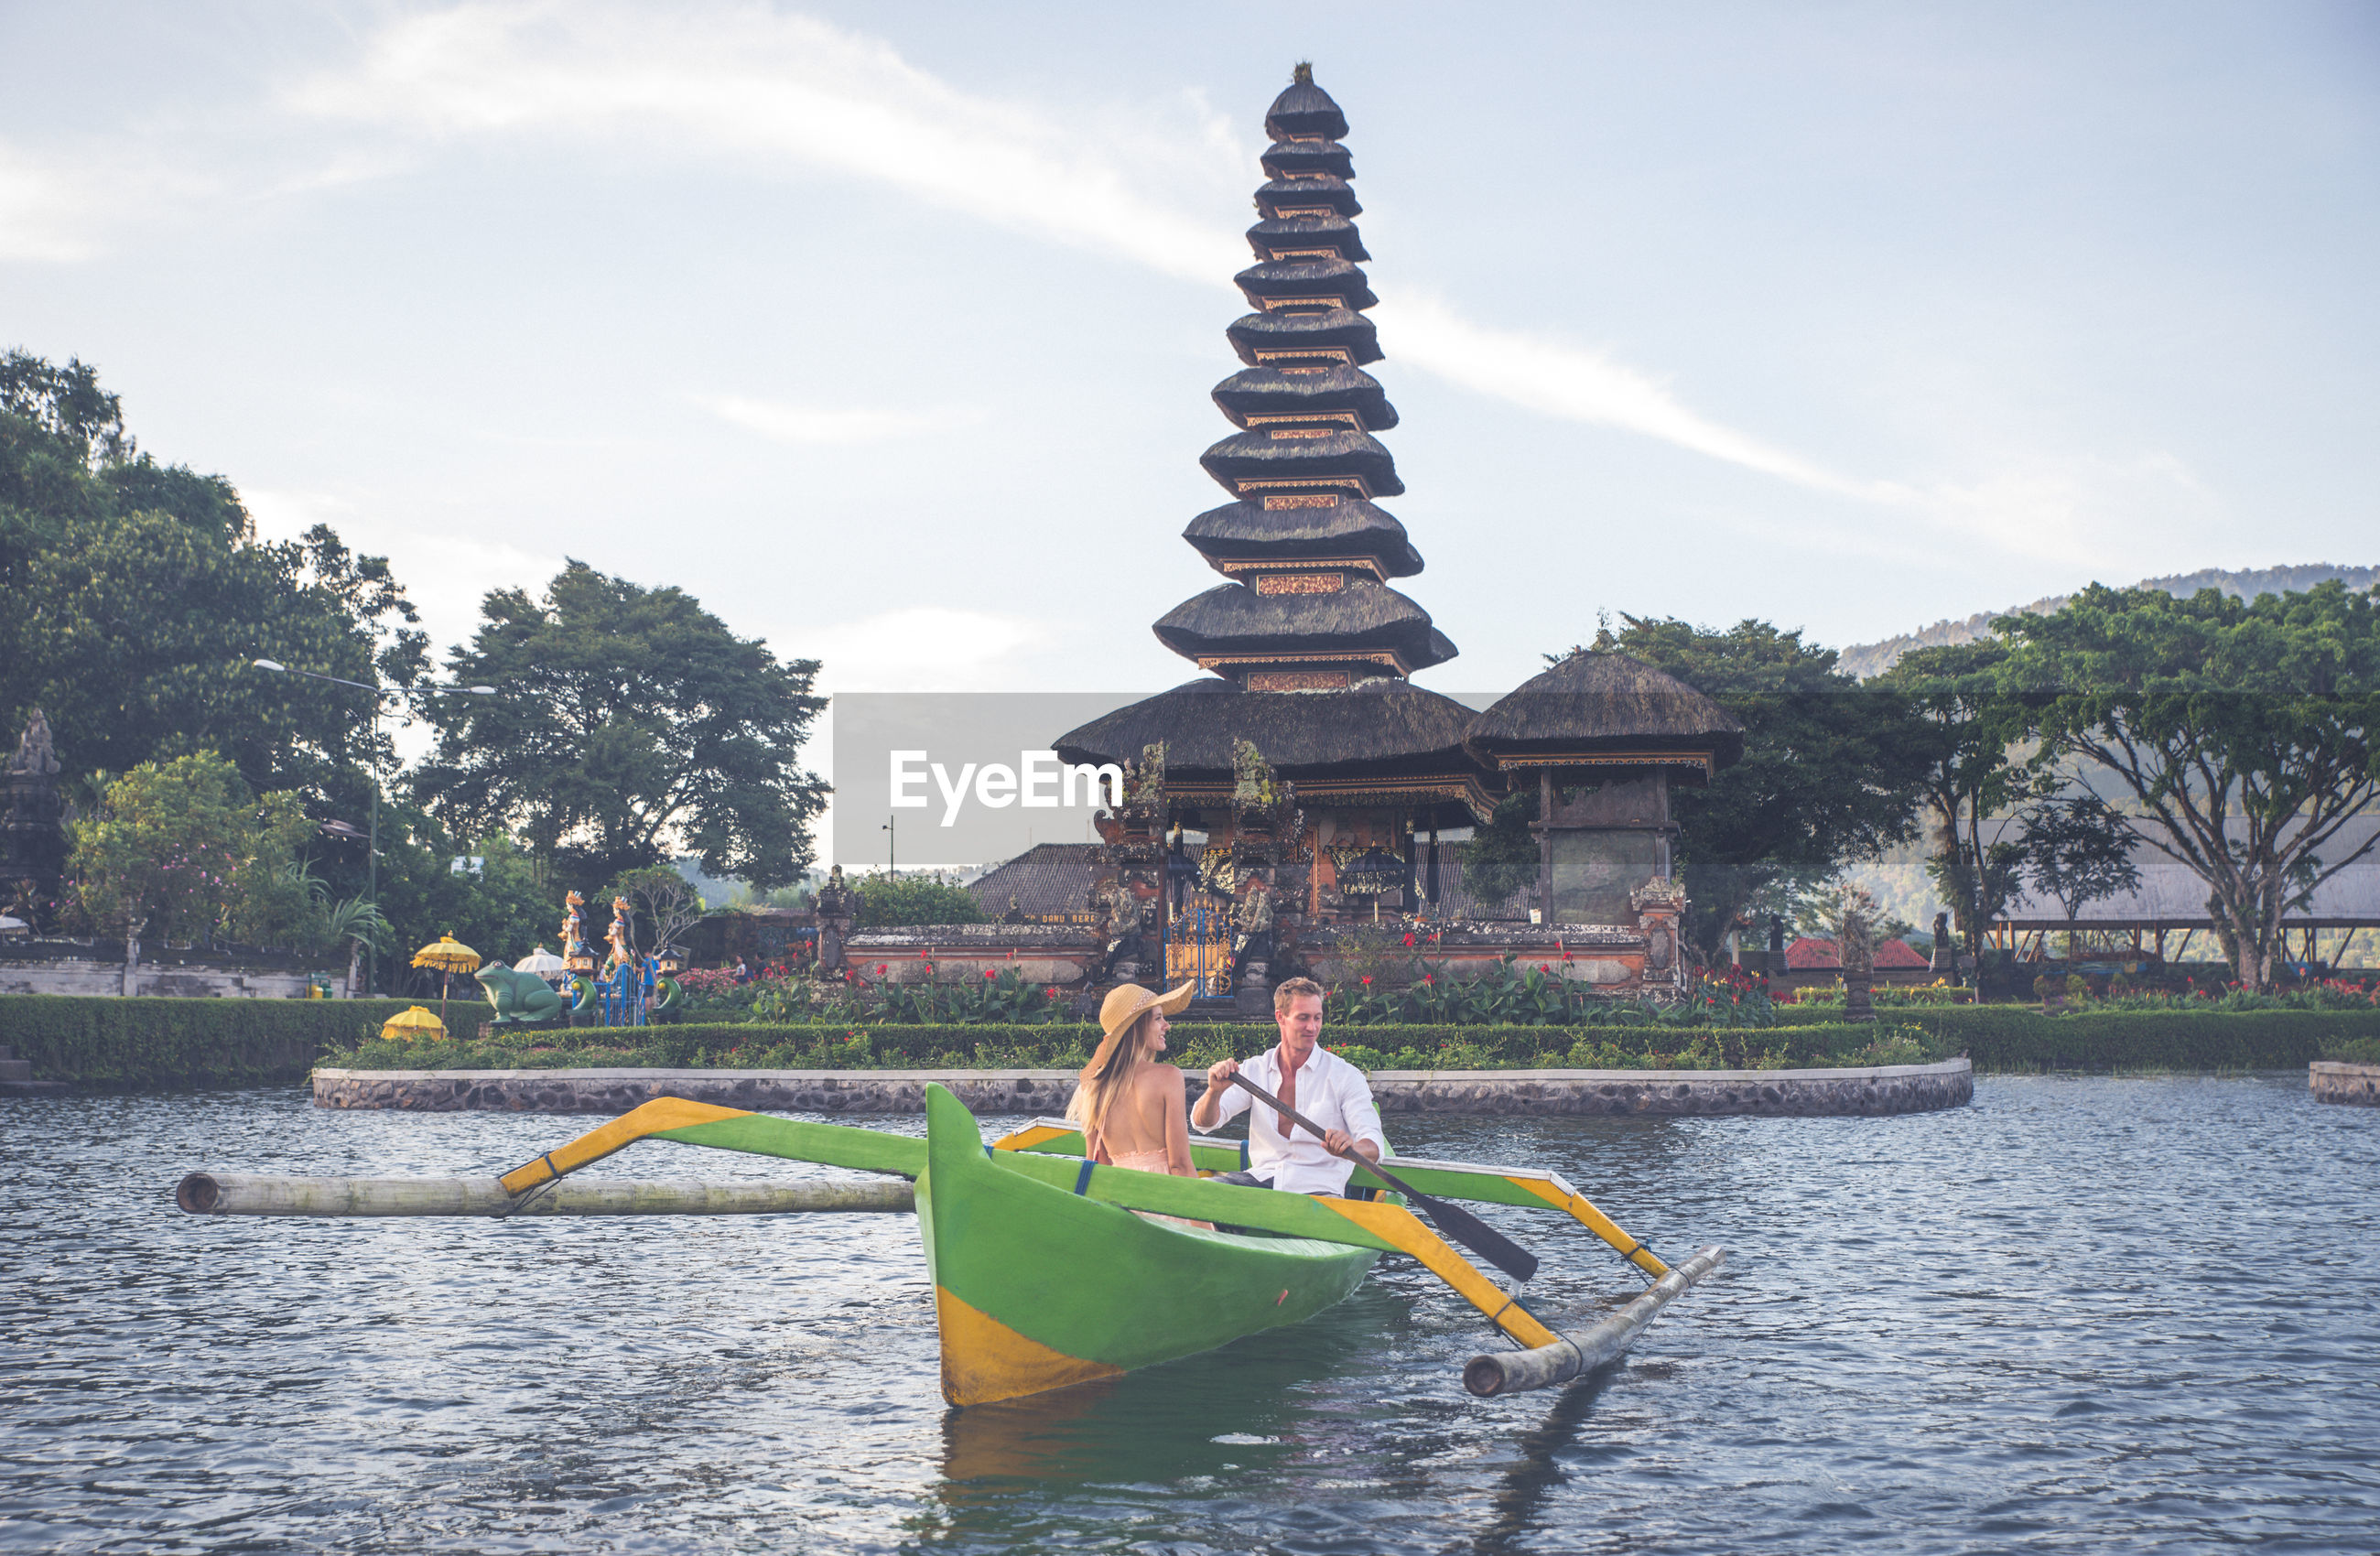 Couple in outrigger boat on lake against temple